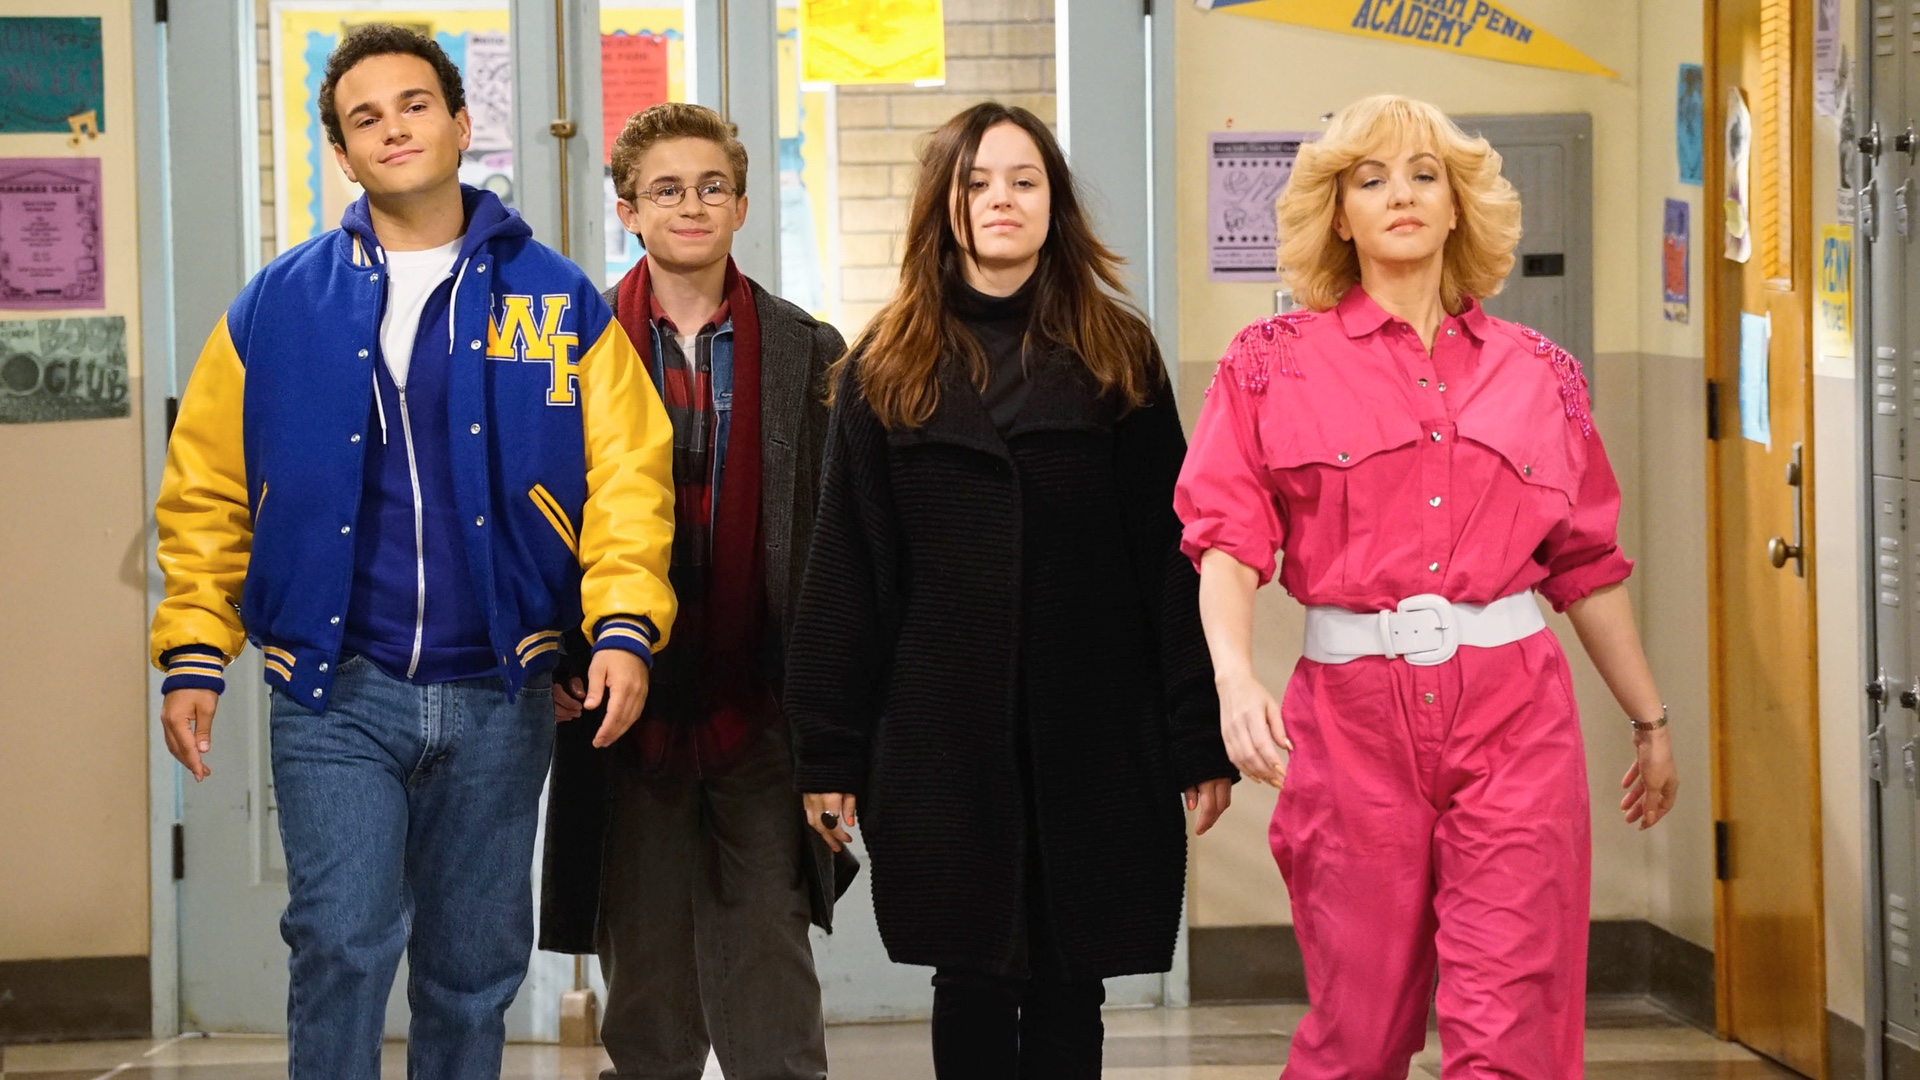 Ive Said It Before And Ill Say Again The Goldbergs Is One Of Best Shows On TV If Youre Not Watching What Are You Waiting For